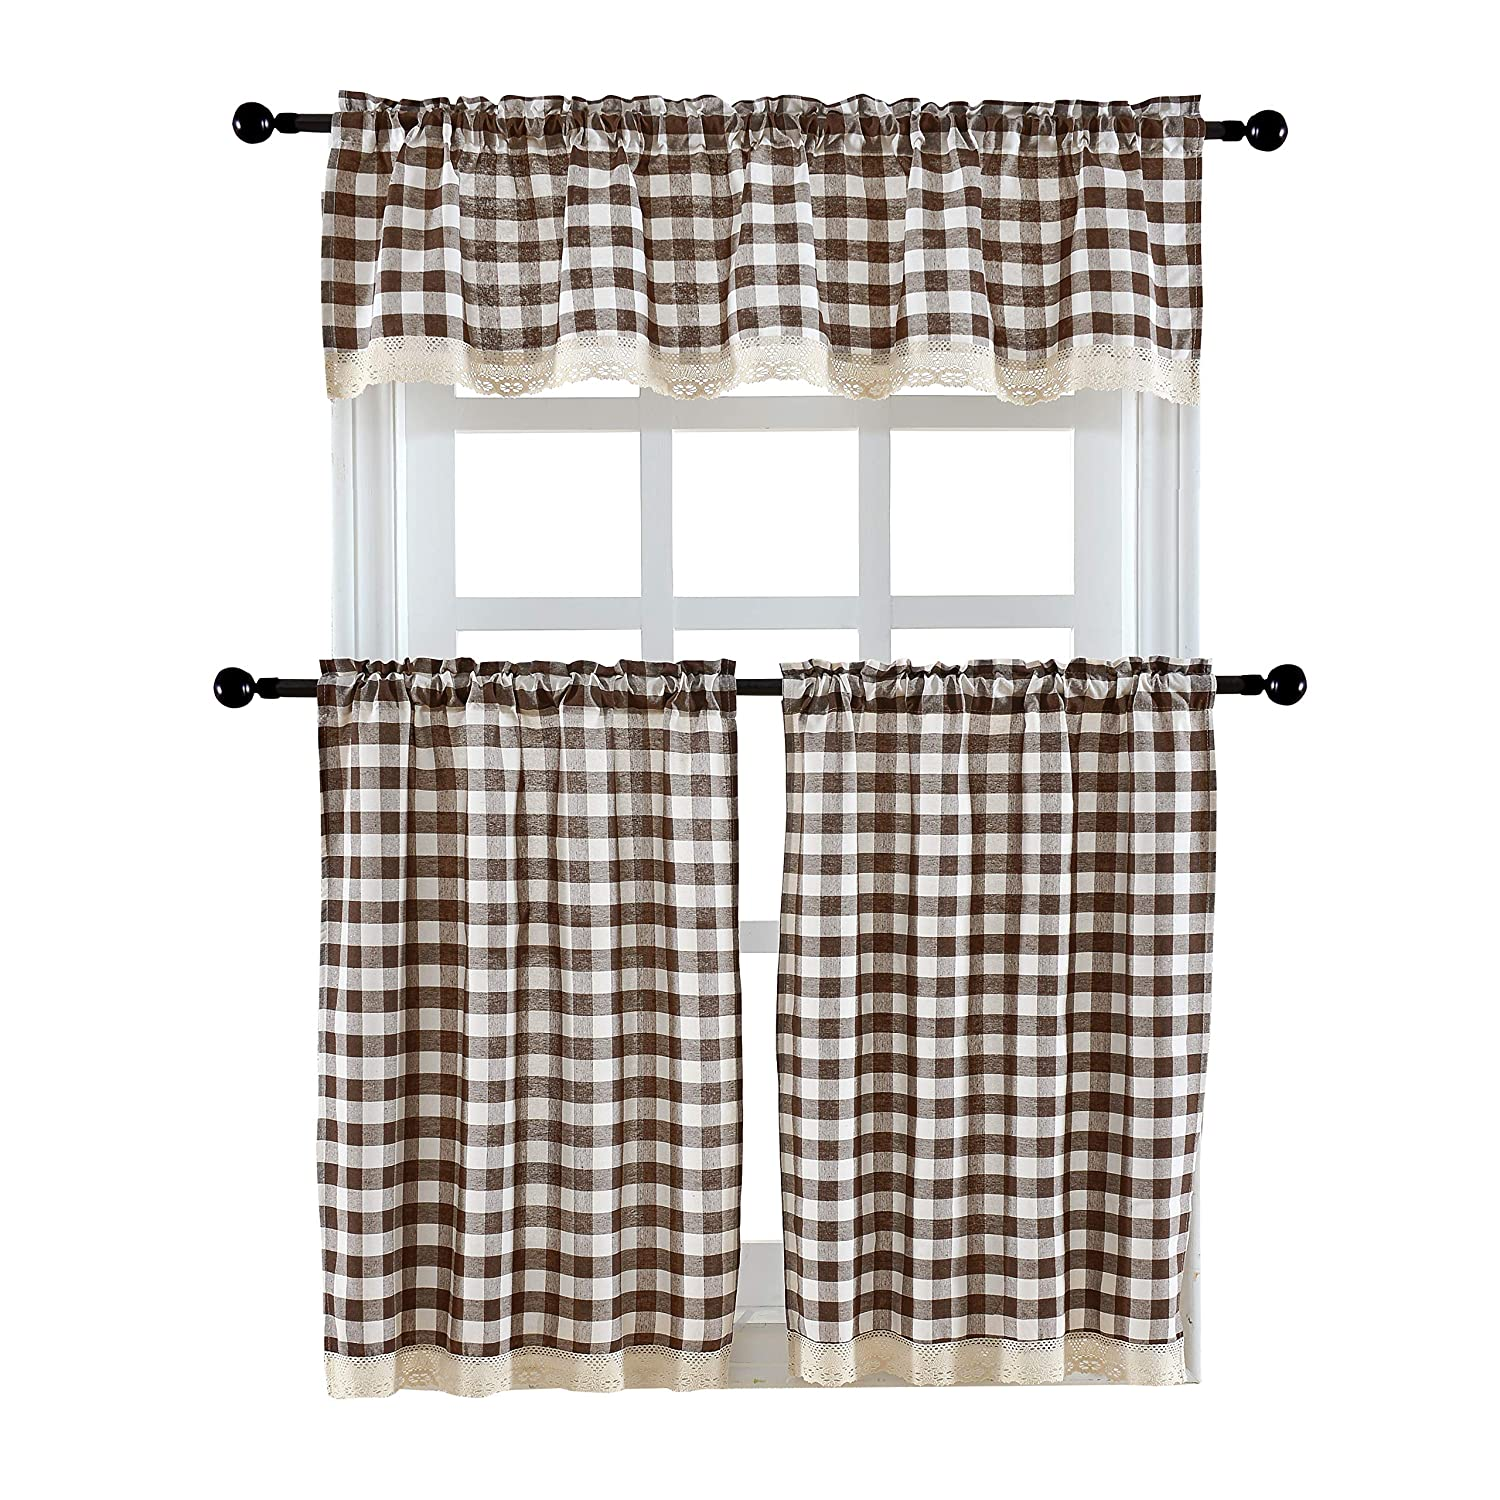 3 Pieces Kitchen Curtain Tier and Valance Set Checkered Cotton Blend Coffee